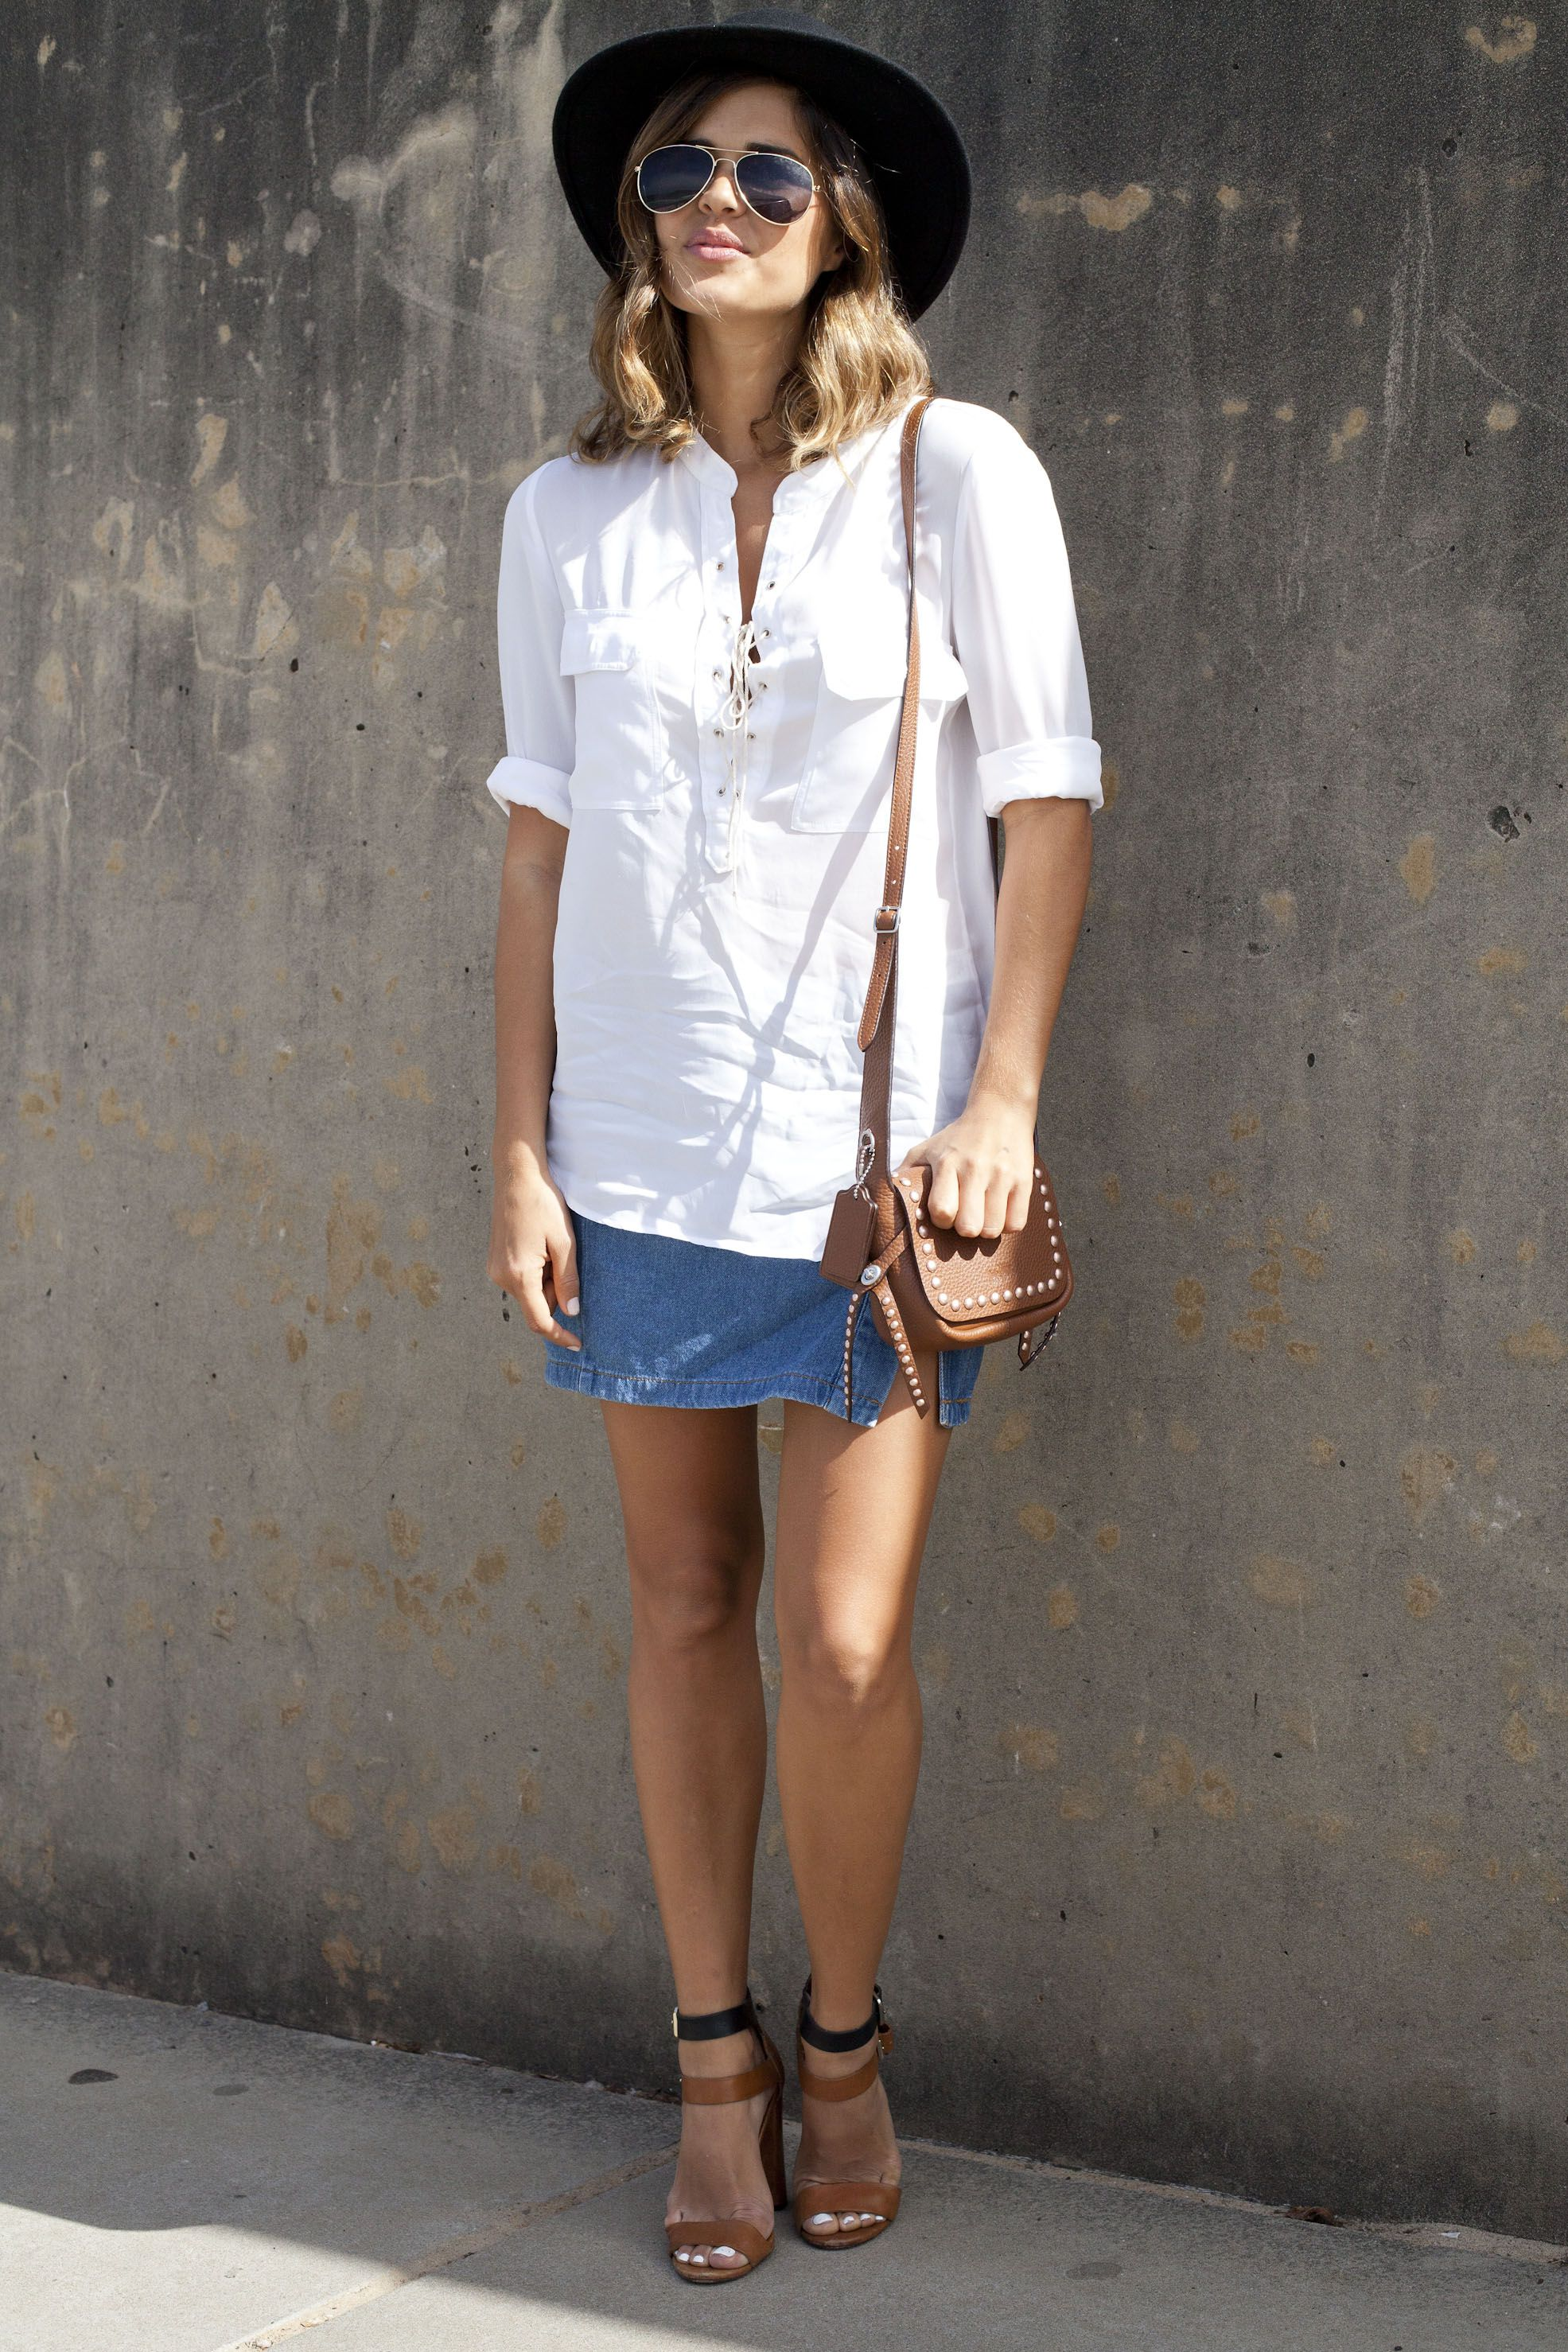 Jean Skirt Outfits What To Wear With A Denim Skirt